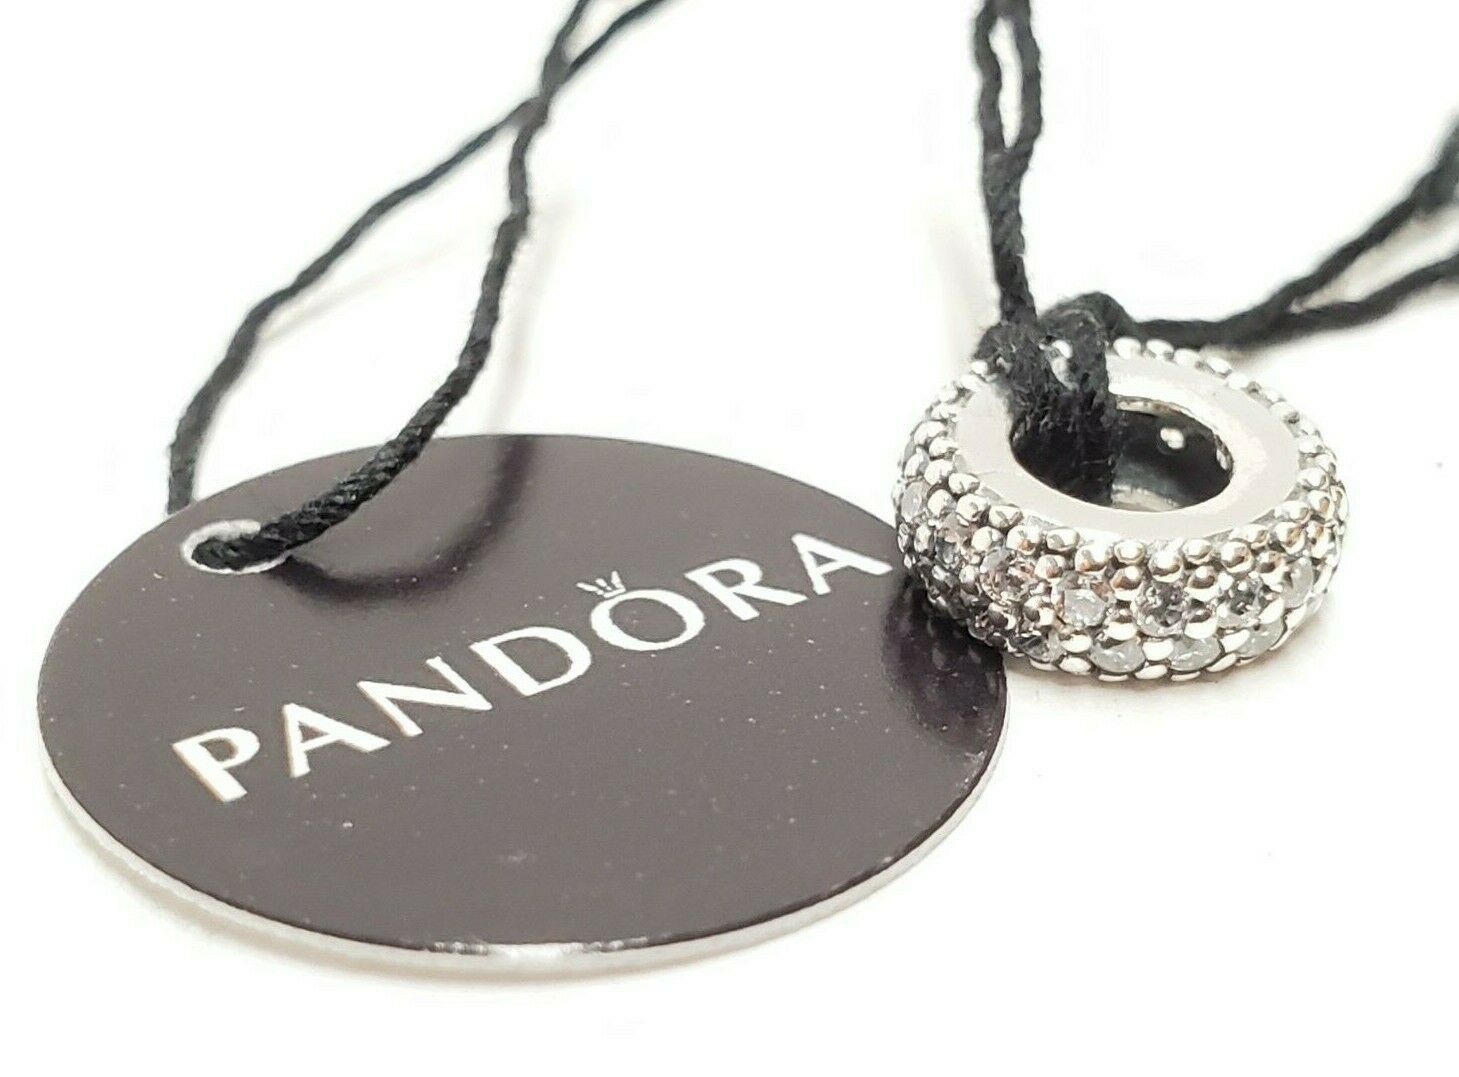 Authentic Pandora Silver 925 Inspiration Within Spacer Charm  791359CZ image 4